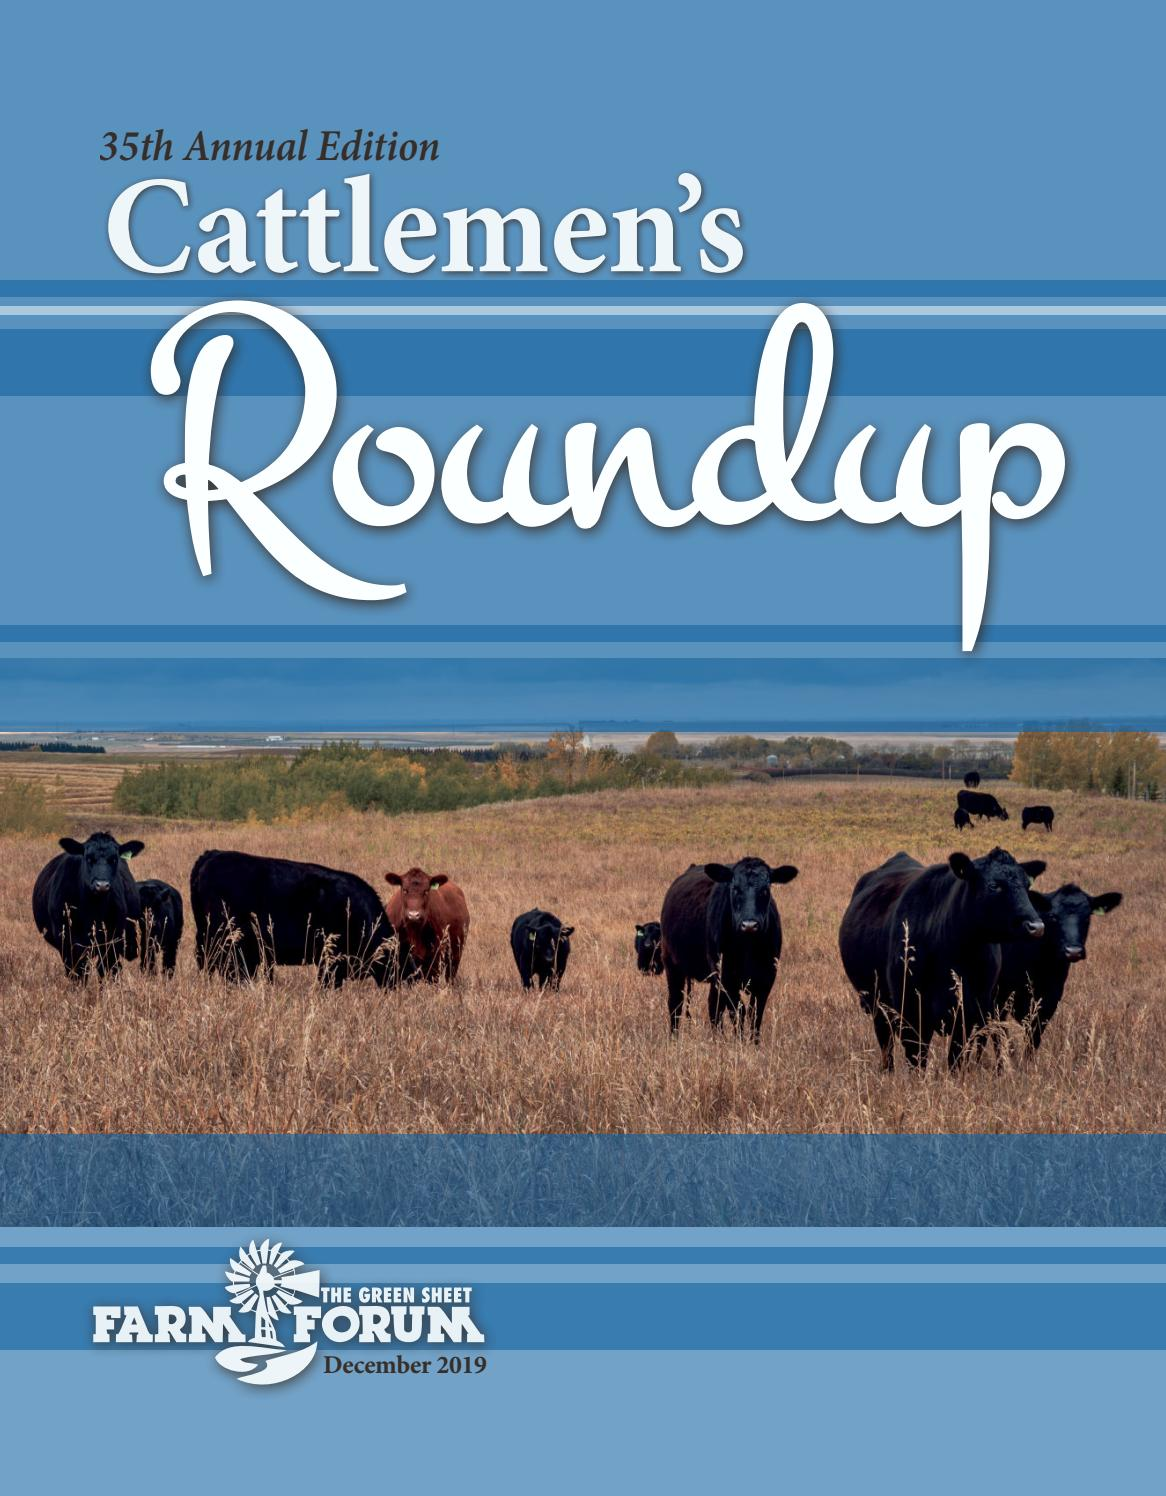 2019 Farm Forum Cattlemen S Roundup By Aberdeen News Farm Forum Issuu In 1950, she joined the navy where she met her husband bernard. 2019 farm forum cattlemen s roundup by